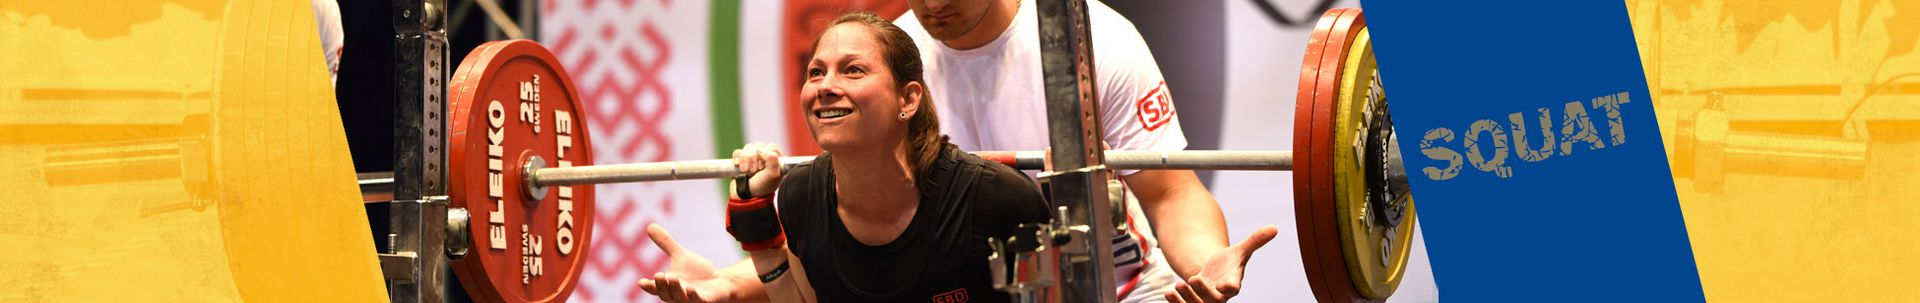 Records - European Powerlifting Federation